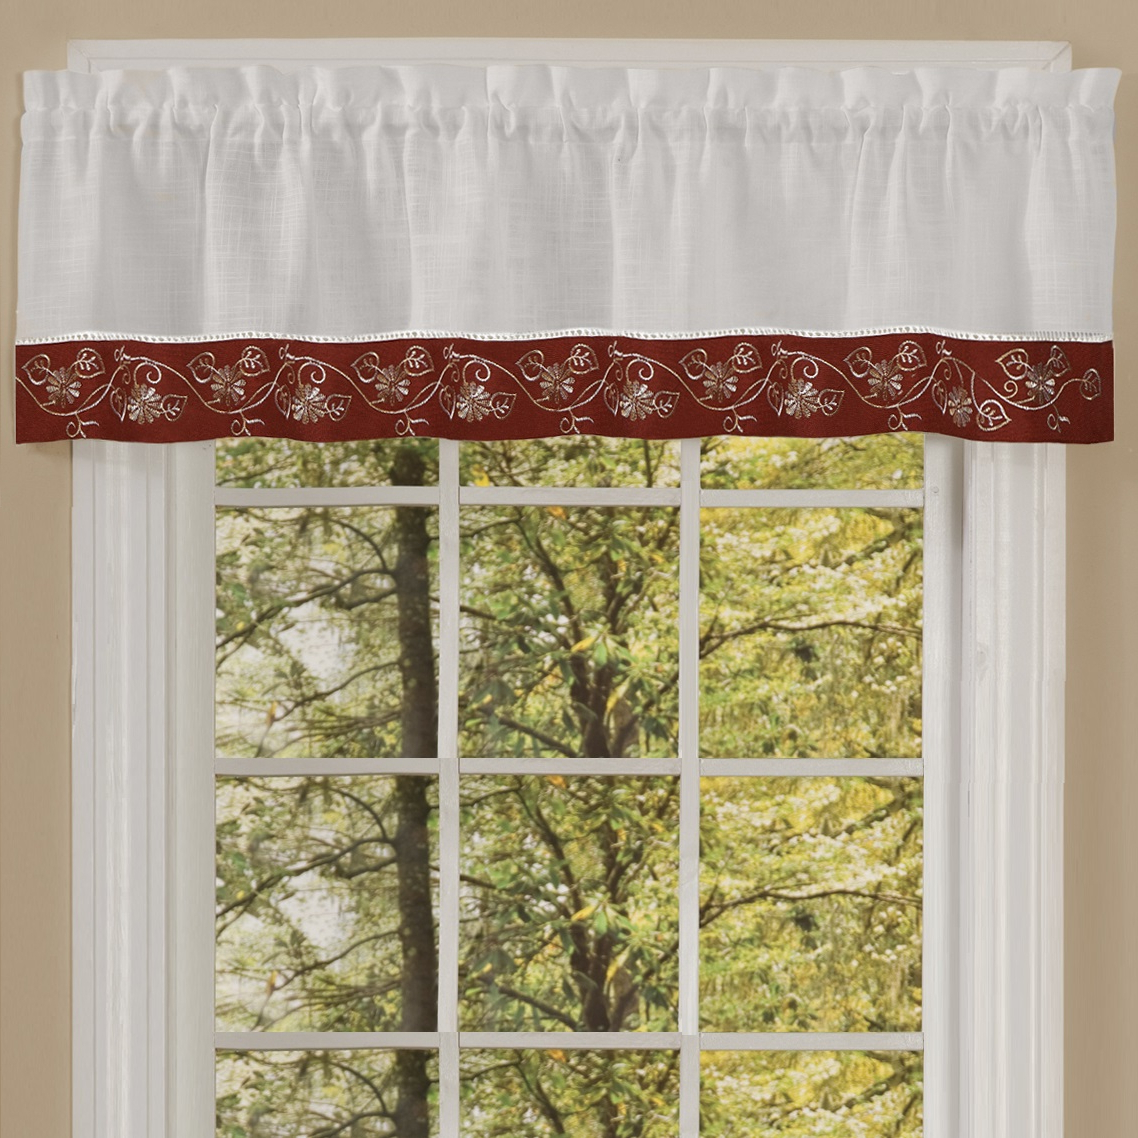 "2020 Oakwood Linen Style Kitchen Window Curtain 58"" X 36"" Kitchen Curtains, Set Of 2, Natural Regarding Oakwood Linen Style Decorative Curtain Tier Sets (View 8 of 20)"